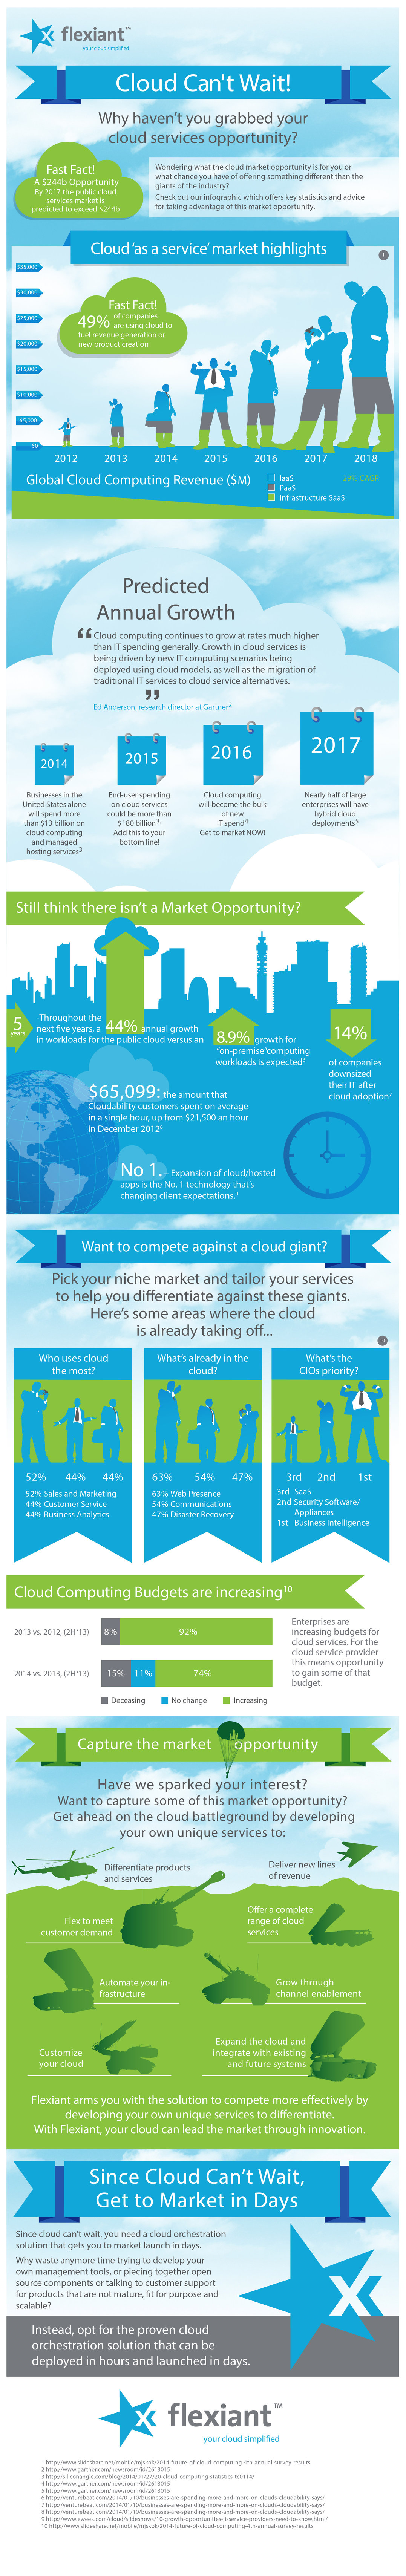 Cloud Infographic: Cloud Cant wait